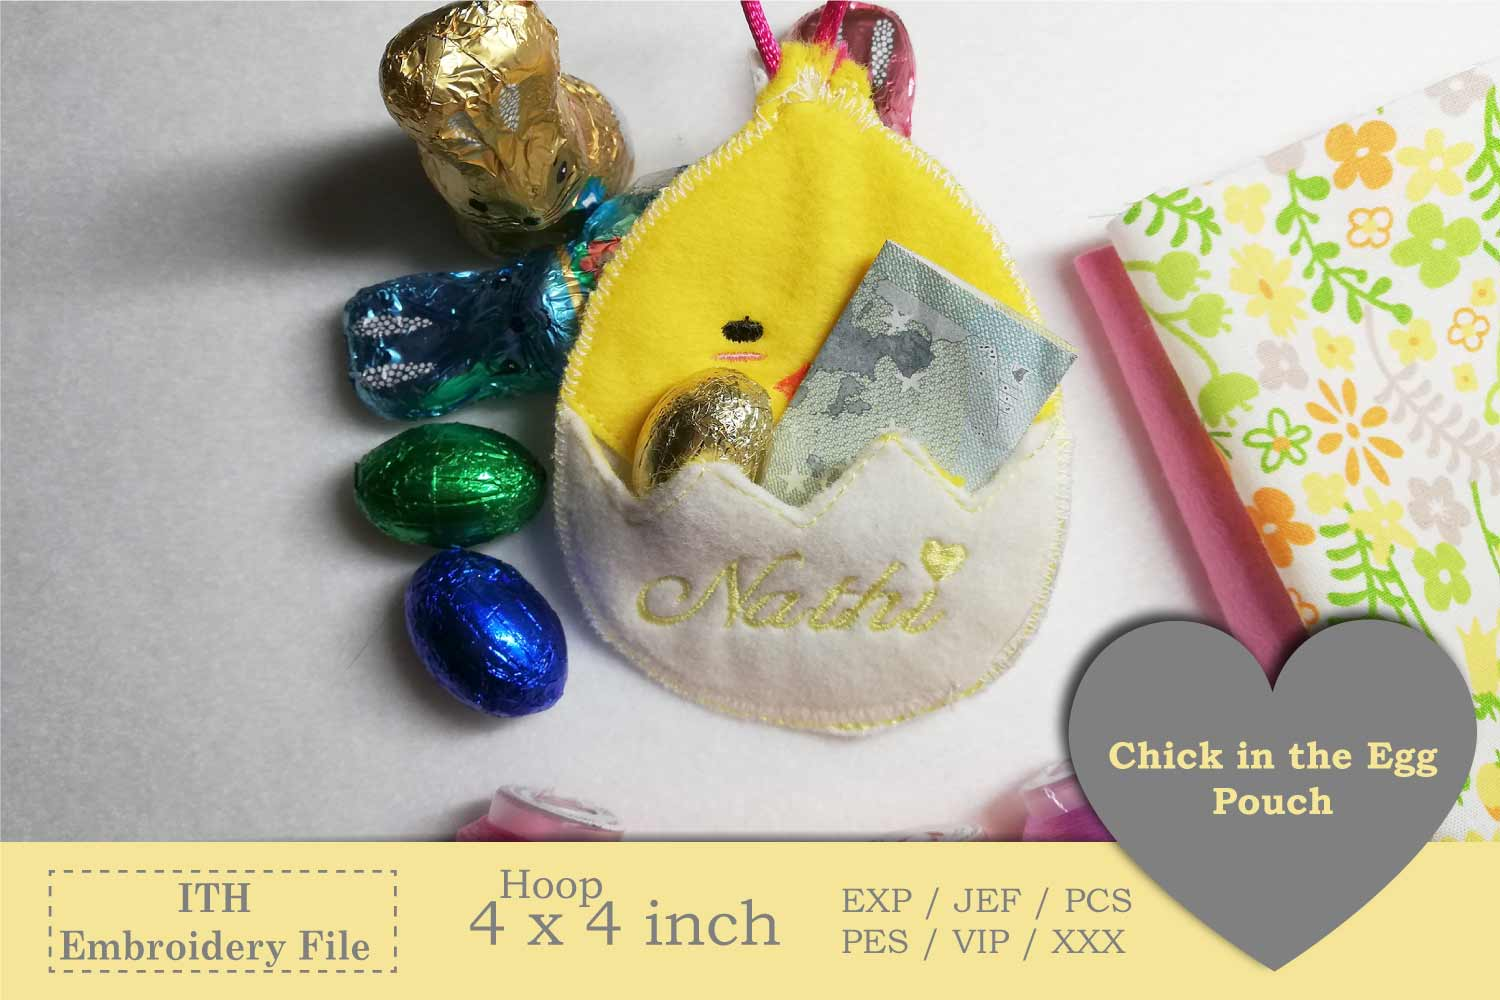 ITH - Egg-Pouch Mini-Bundle - 3 Motives example image 6